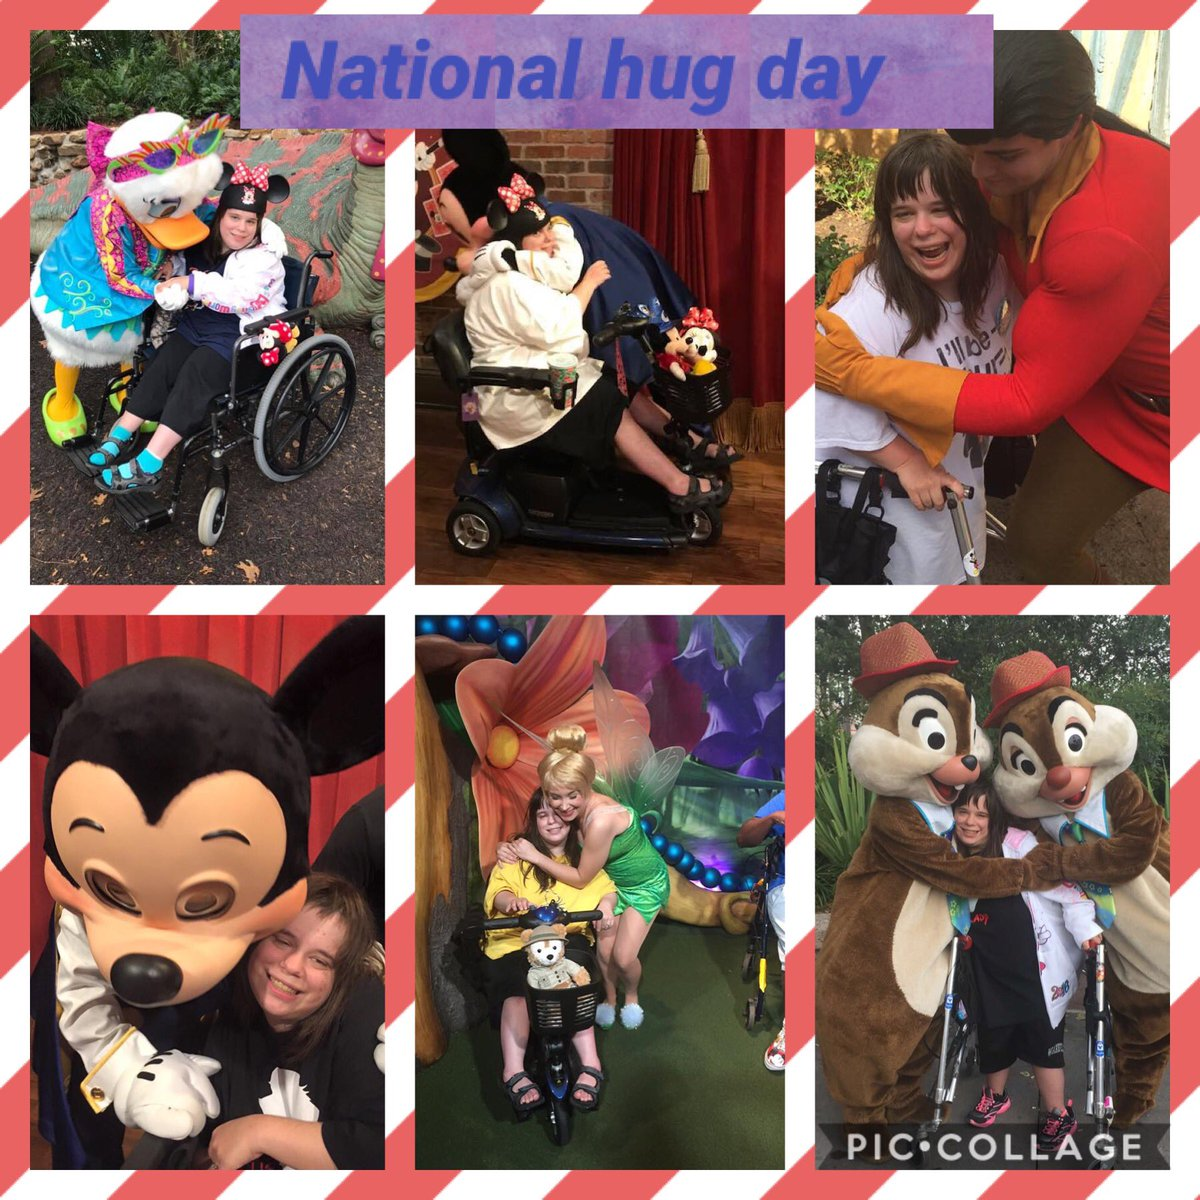 Happy National hug day everyone ❤️ here is a collage of some of my favorite Disney friends giving me hugs. Disney hugs  are the best. @WaltDisneyWorld #NationalHugDay #DisneyWorld #disneyfriends